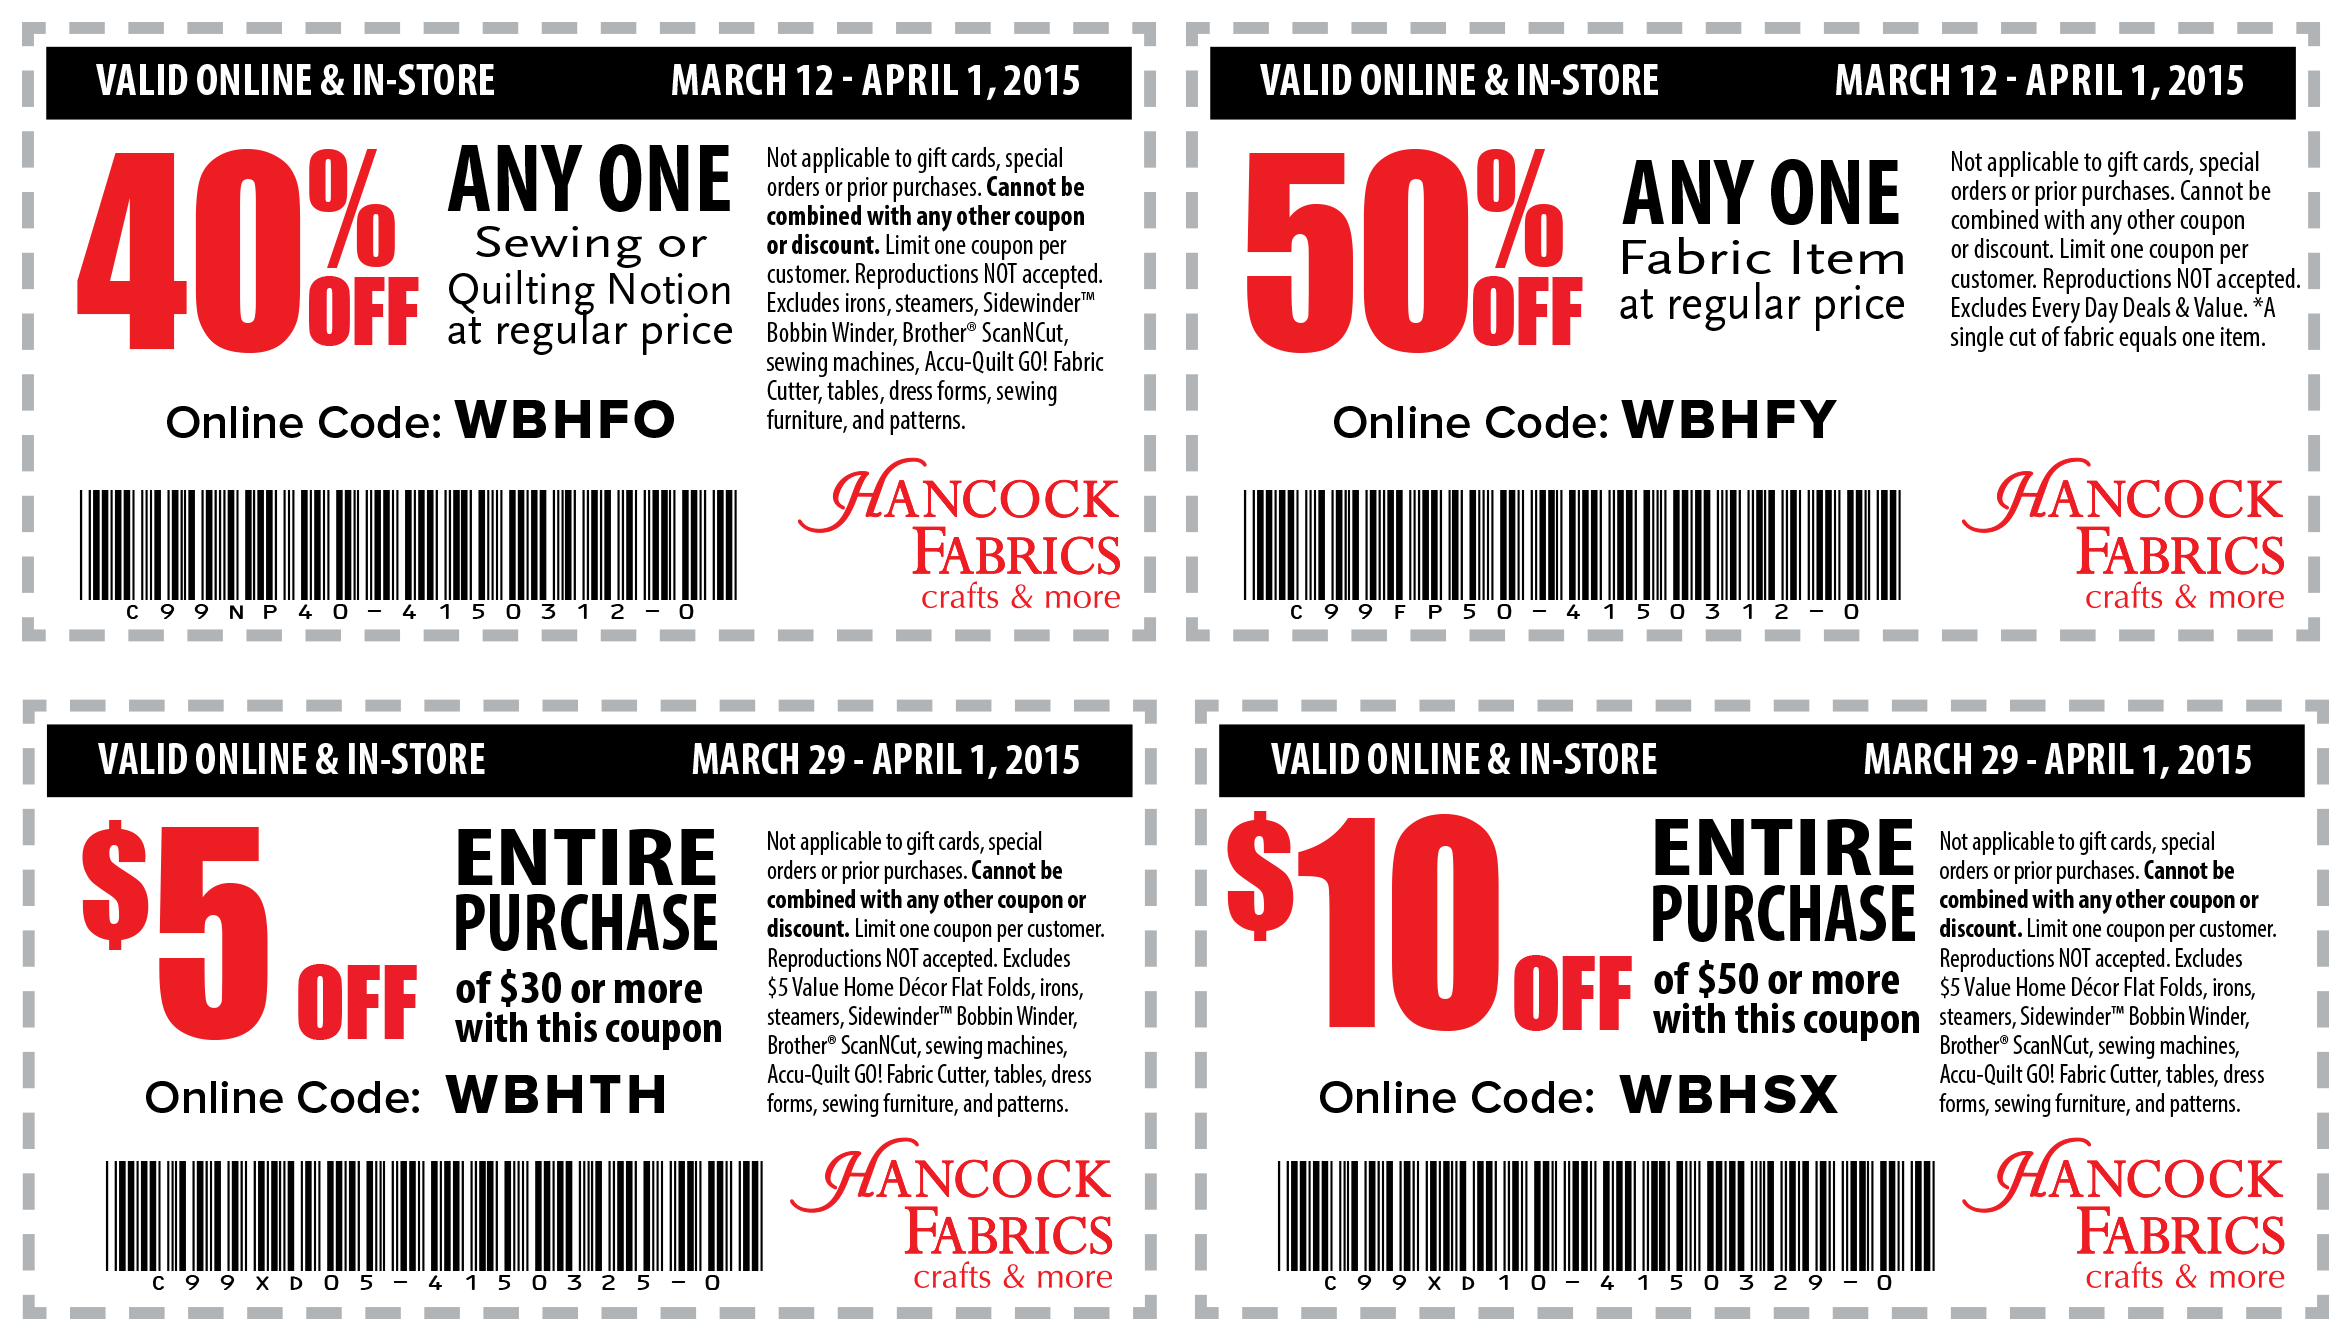 Hancock Fabrics Coupon May 2018 $5 off $30, 50% off a single fabric item & more today at Hancock Fabrics, or online via promo code WBHFY